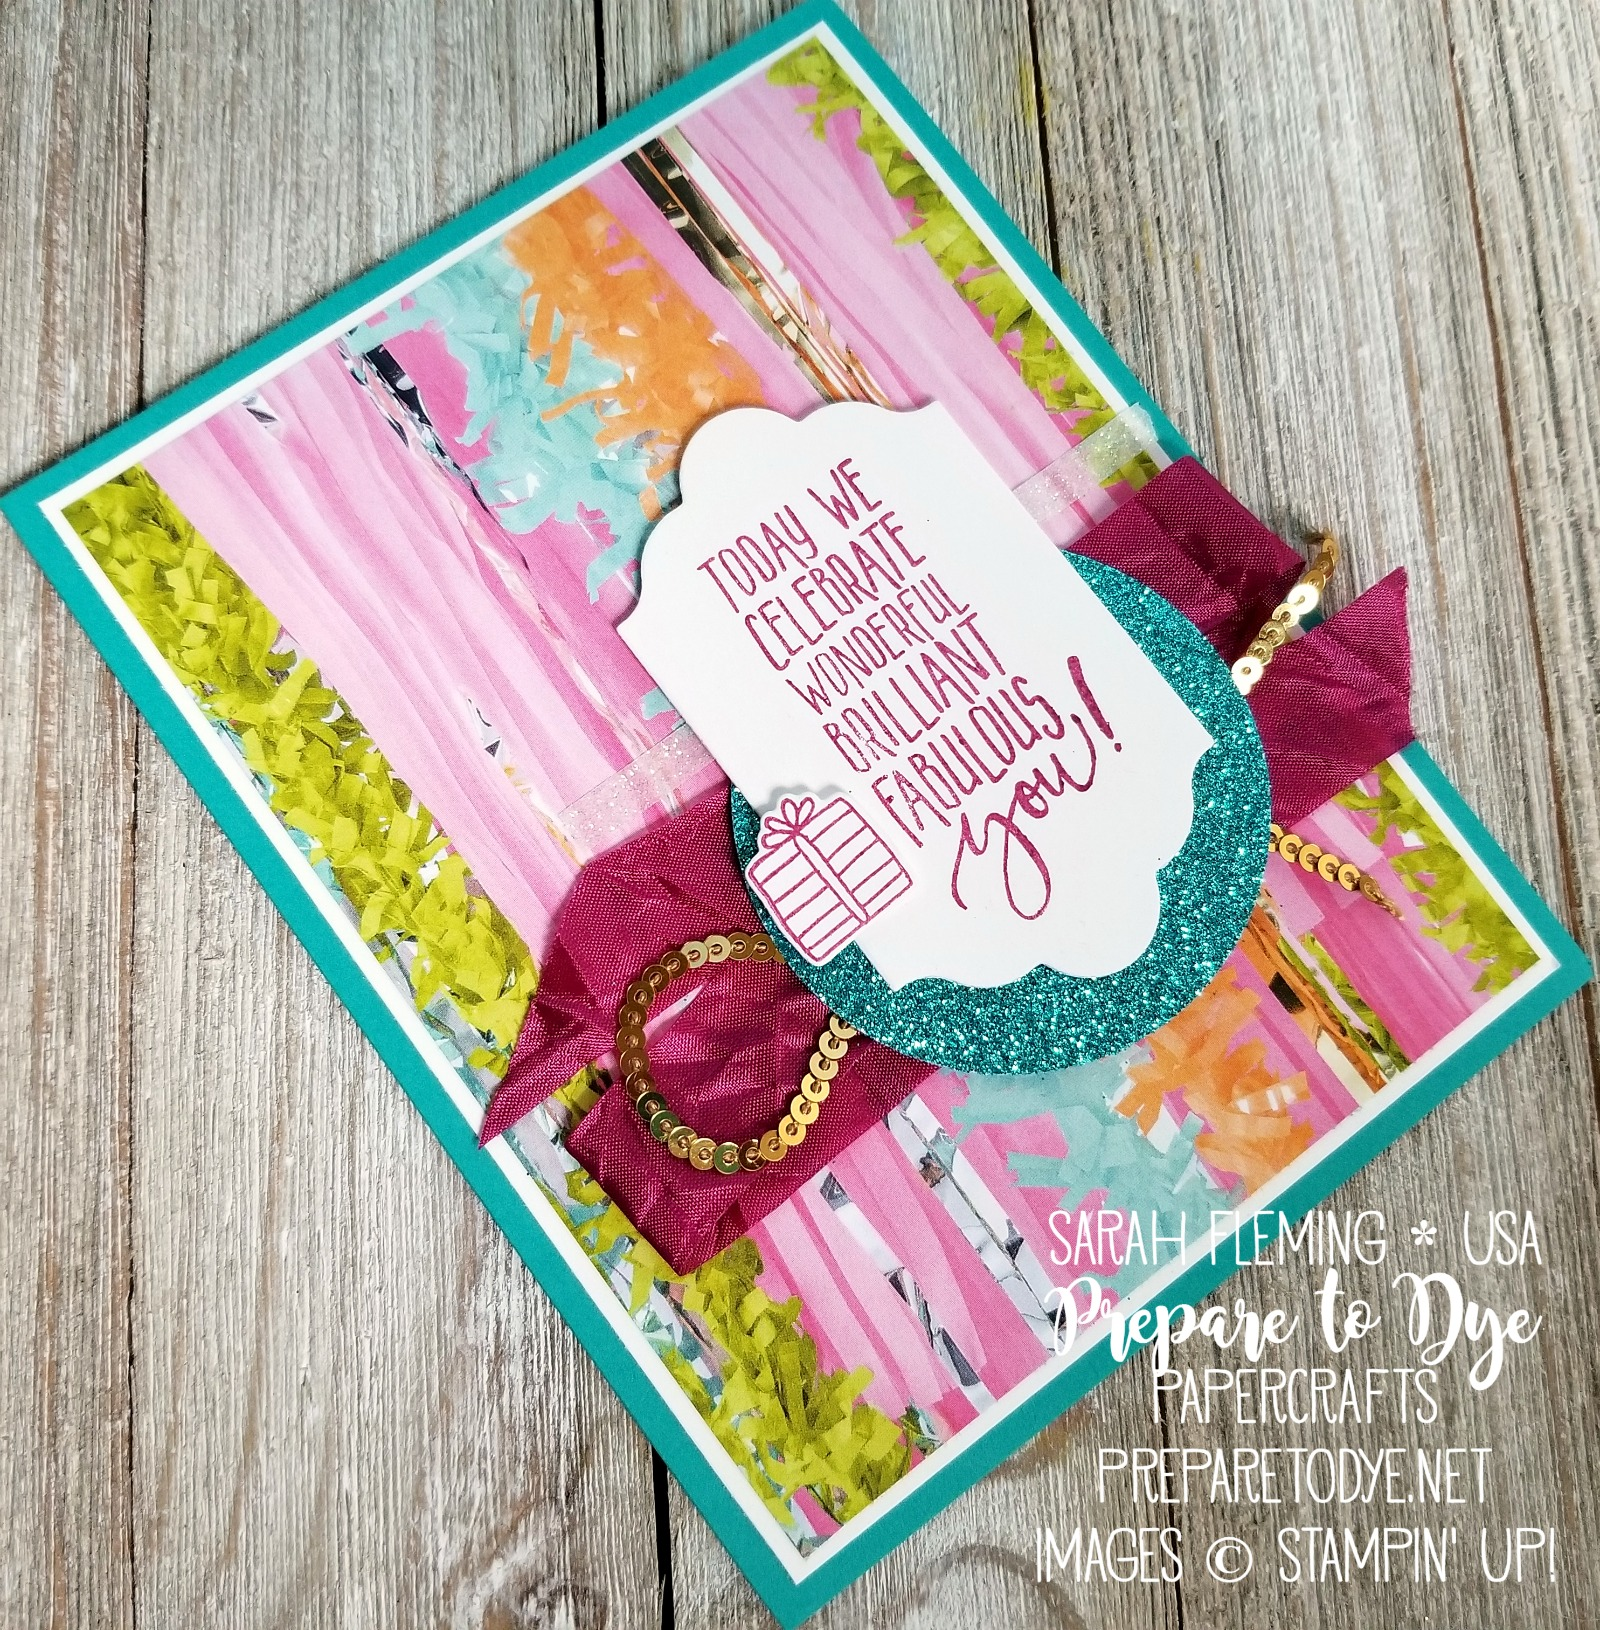 Stampin' Up! Picture Perfect Party suite with Picture Perfect Party paper, Picture Perfect Birthday stamps, Myths & Magic Glimmer Paper, Myths & Magic Washi Tape